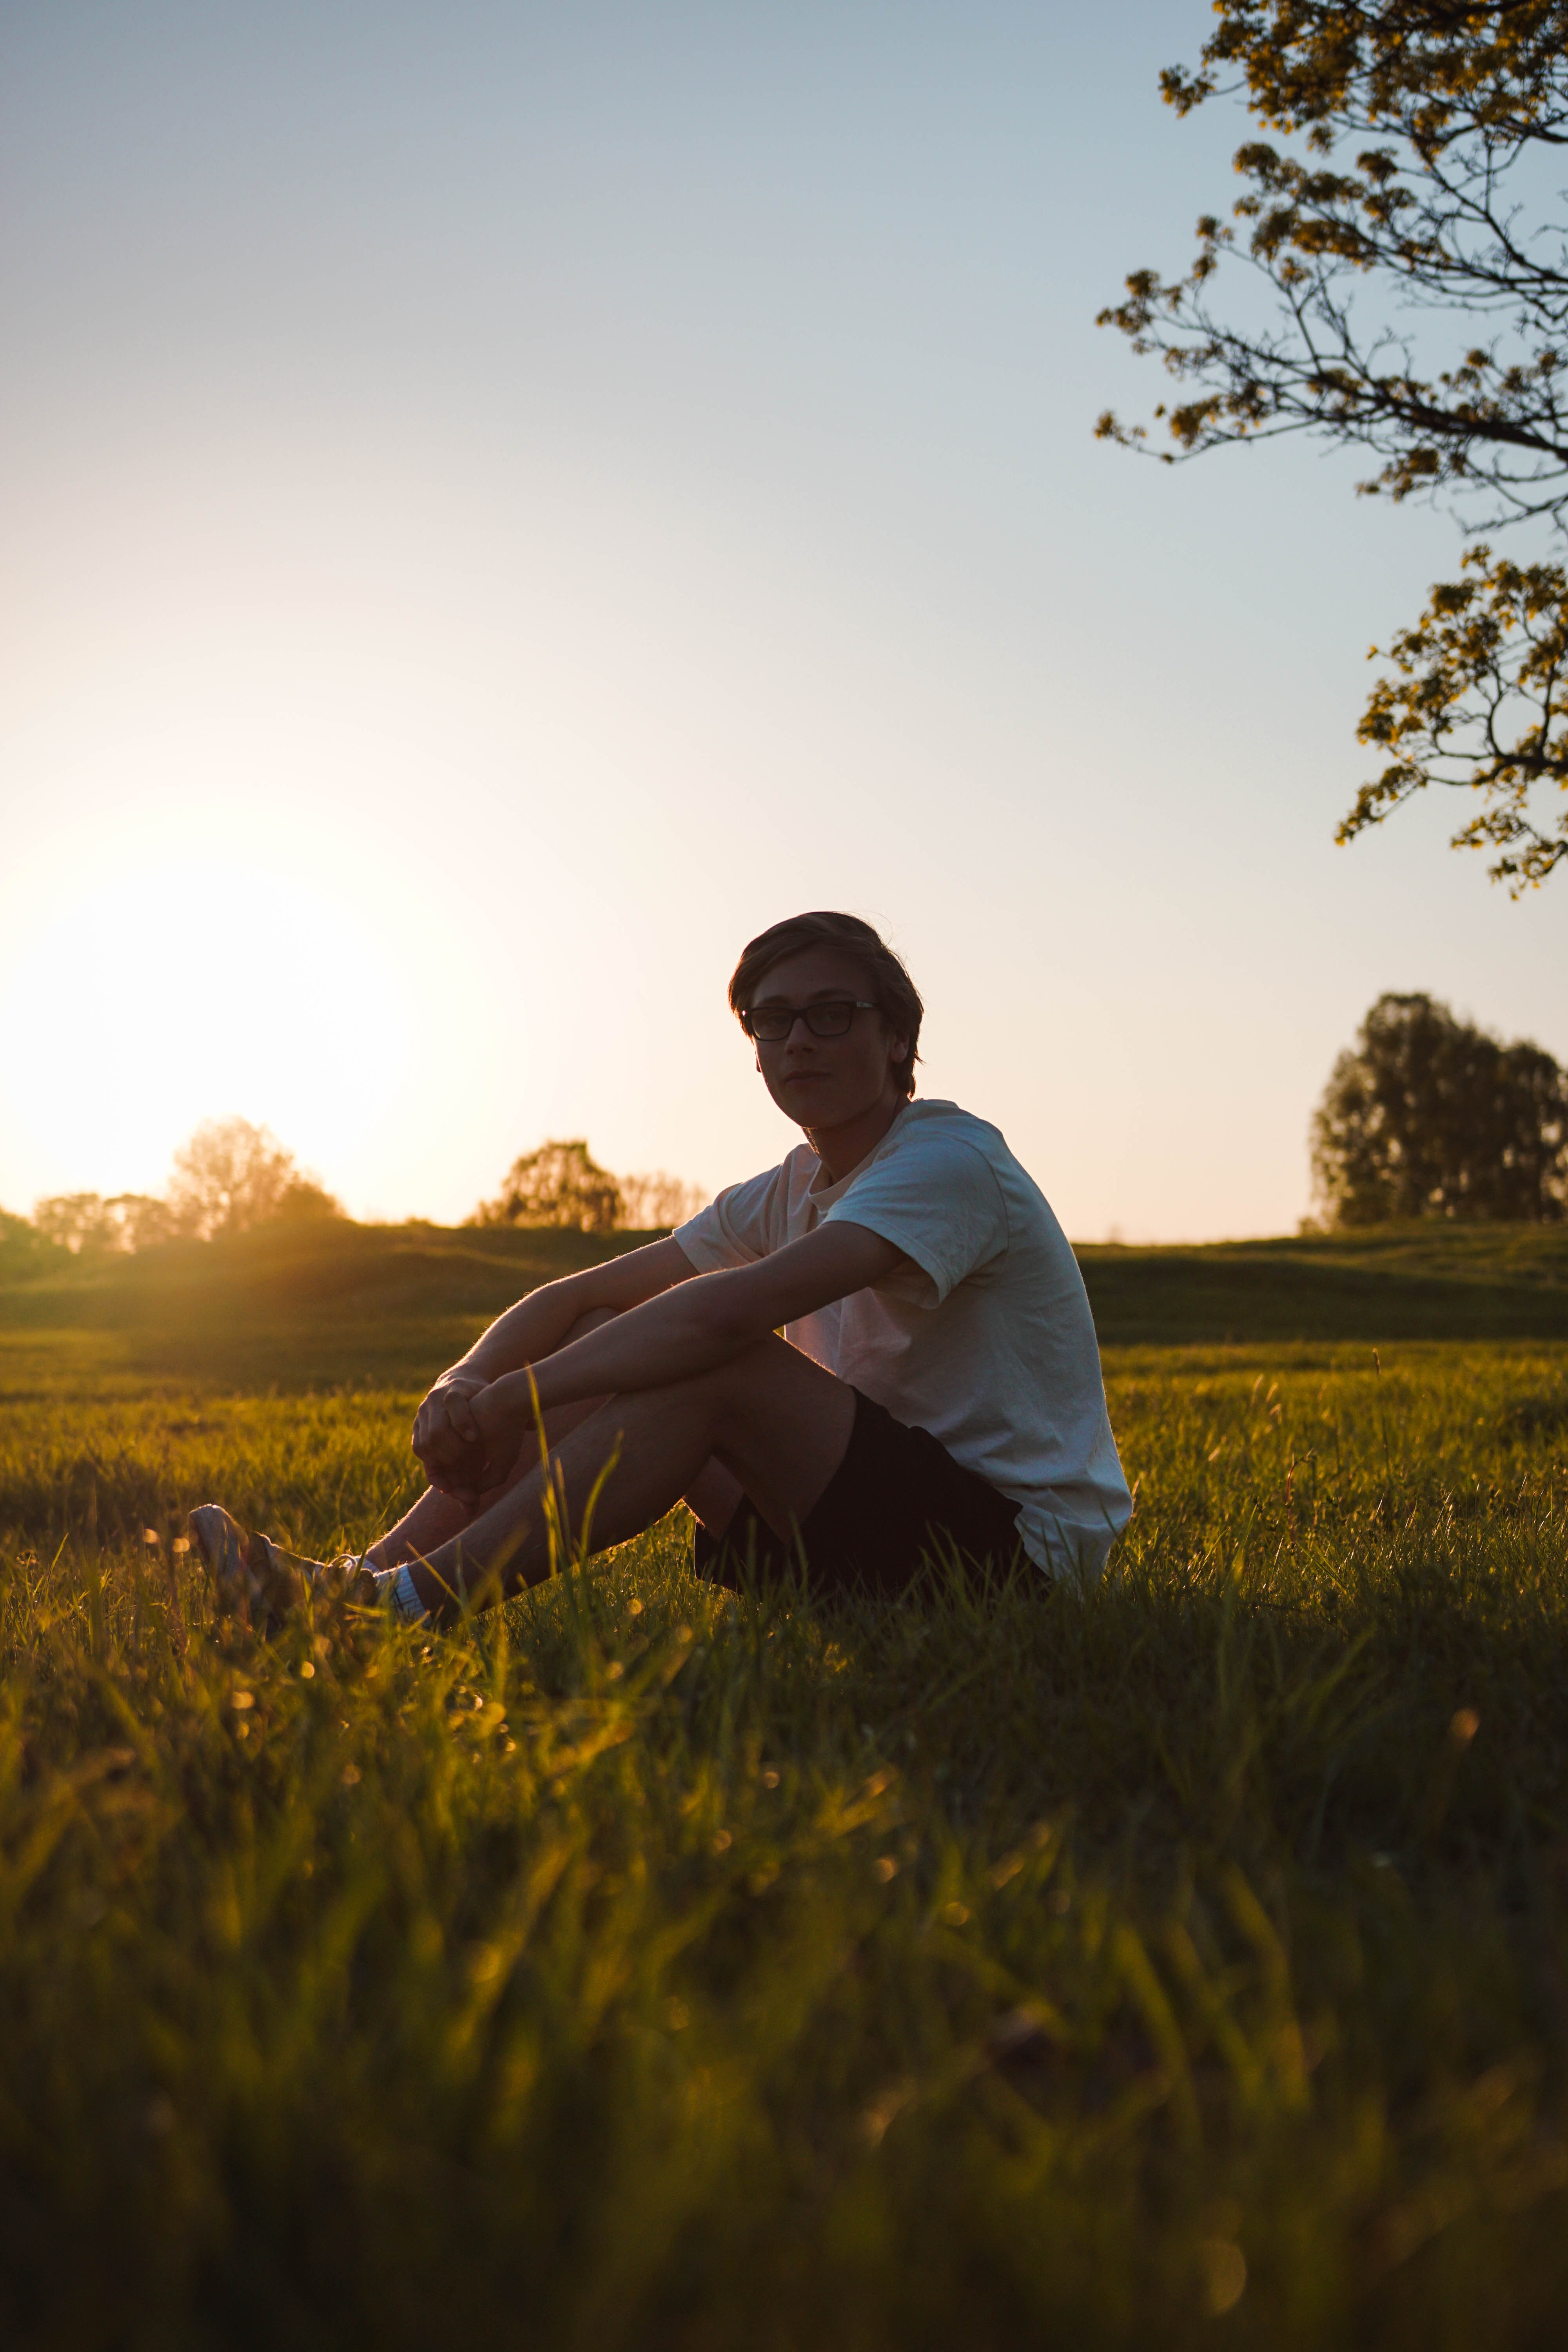 man sitting on grass field during sunset